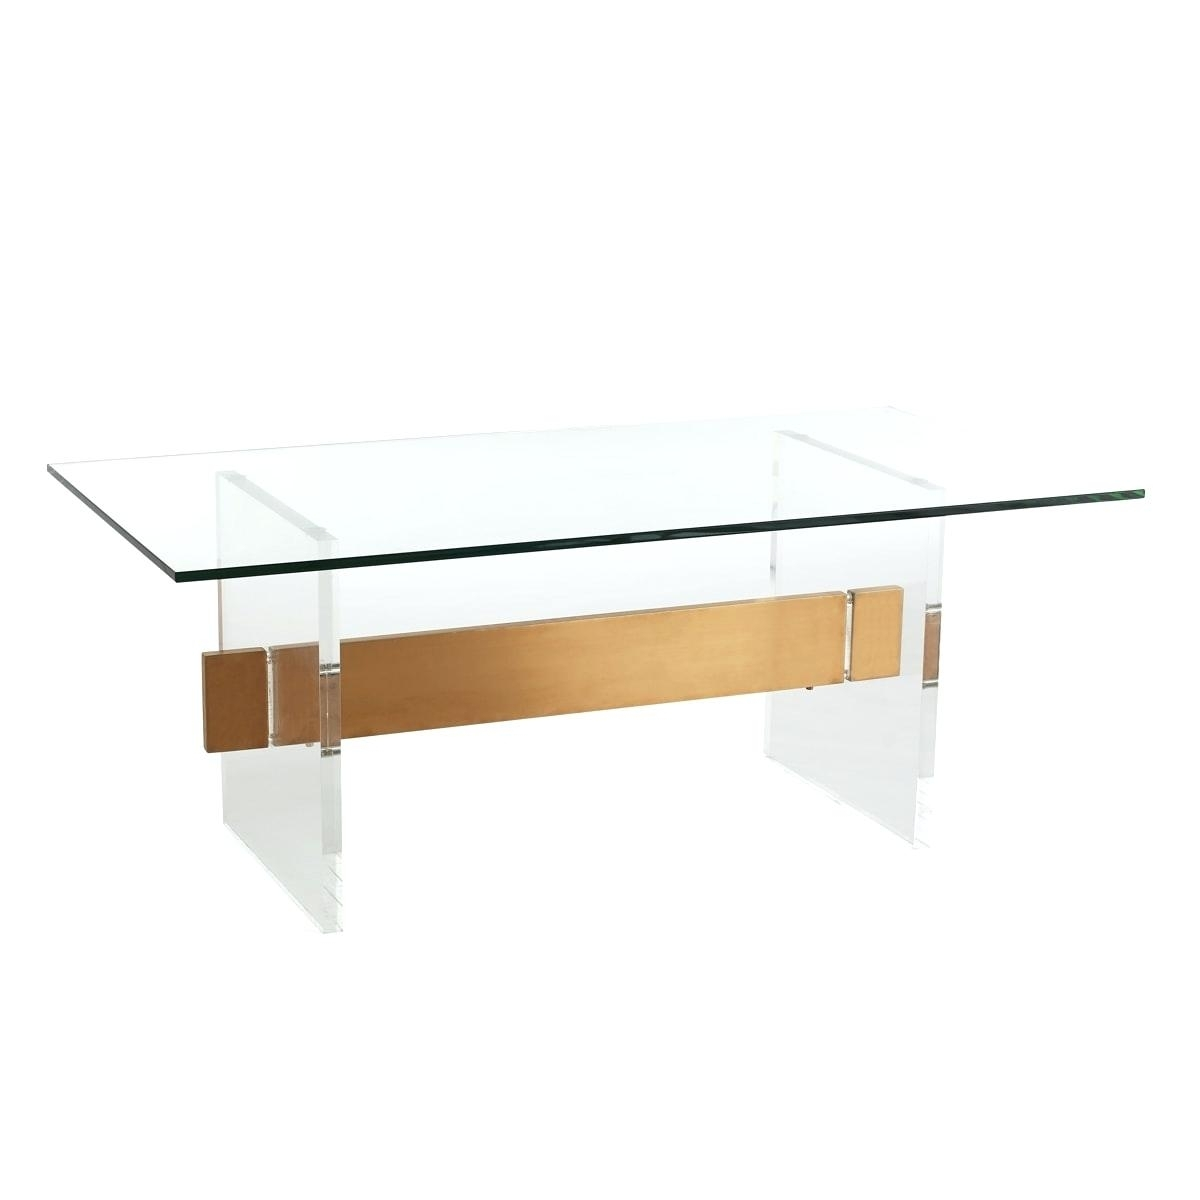 Glass Brass Coffee Table Acrylic Brushed Brass Coffee Table Glass pertaining to Acrylic & Brushed Brass Coffee Tables (Image 12 of 20)